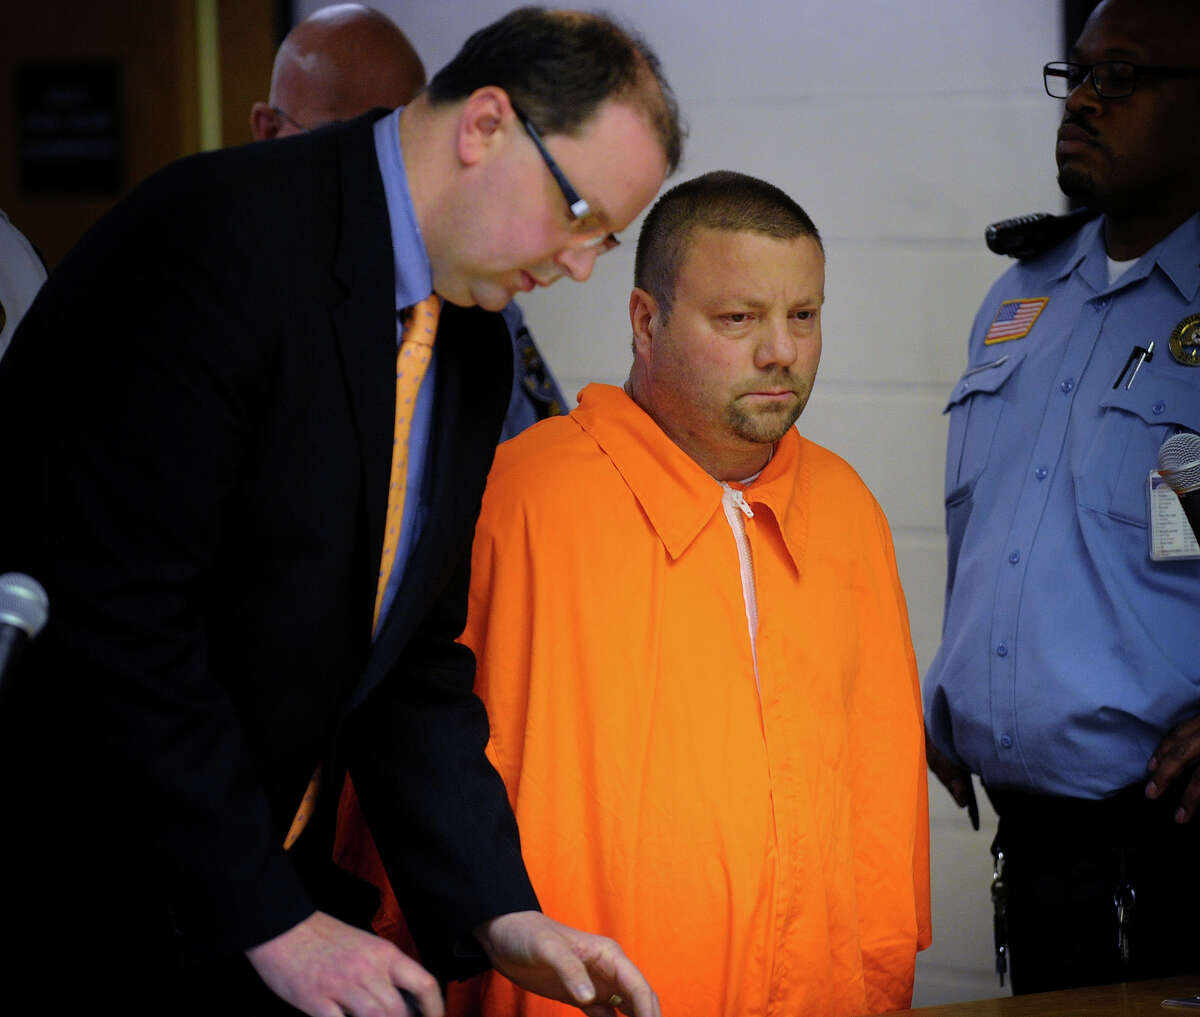 Scott Gellatly stands quietly before the judge during his arraignment for Wednesday's Oxford murder of his estranged wife, Lori Gellatly, in Superior court in Derby, Conn. on Thursday, May 8, 2014.